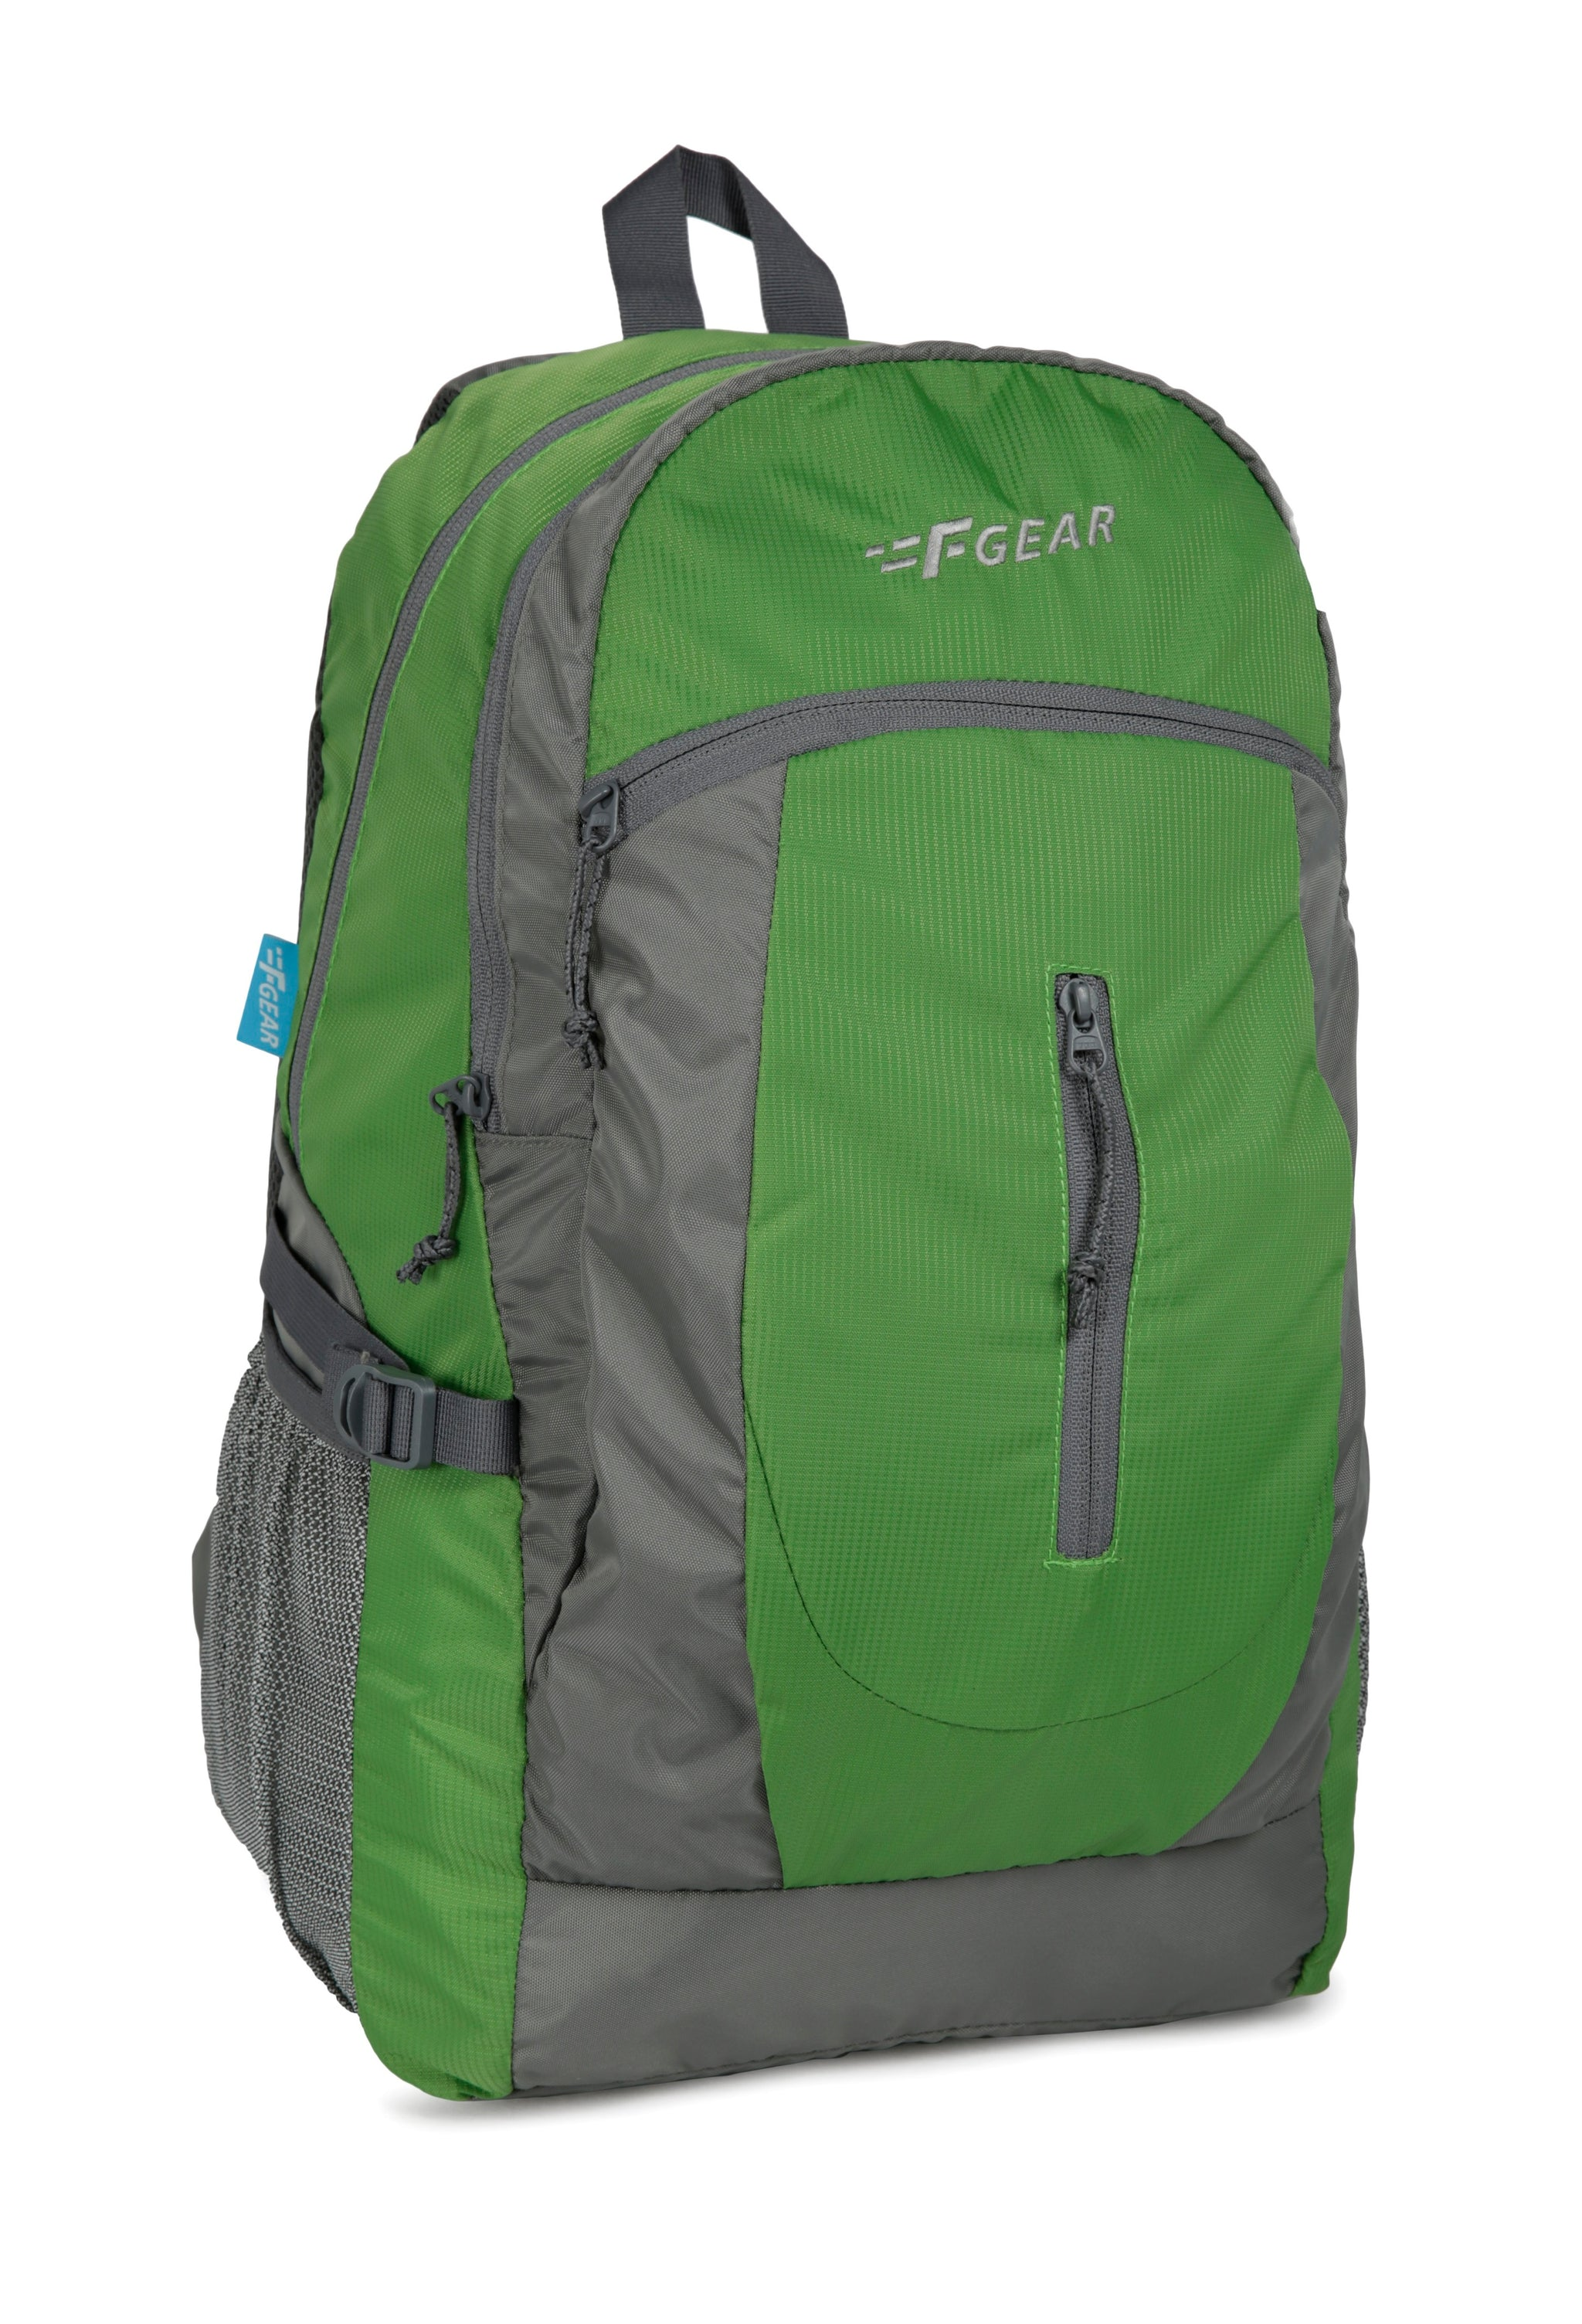 F Gear Apache 32 Ltrs Forest Green Gry Casual Backpack (3133)